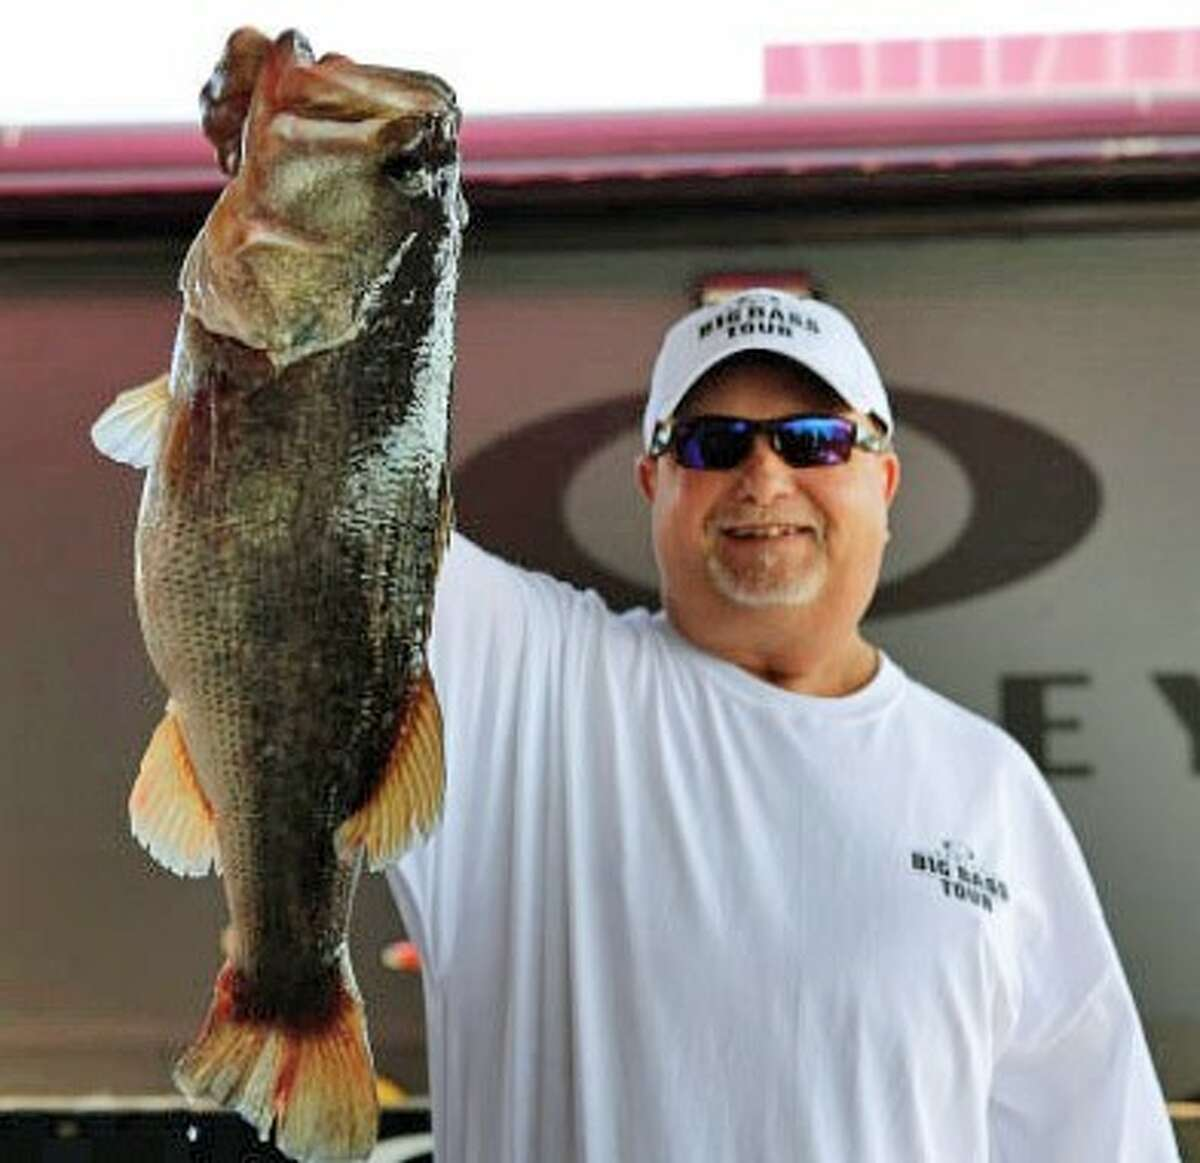 Michael Klevenski reeled in the biggest fish of the Oakley Big Bass Tournament with a catch of 10.41 pounds.